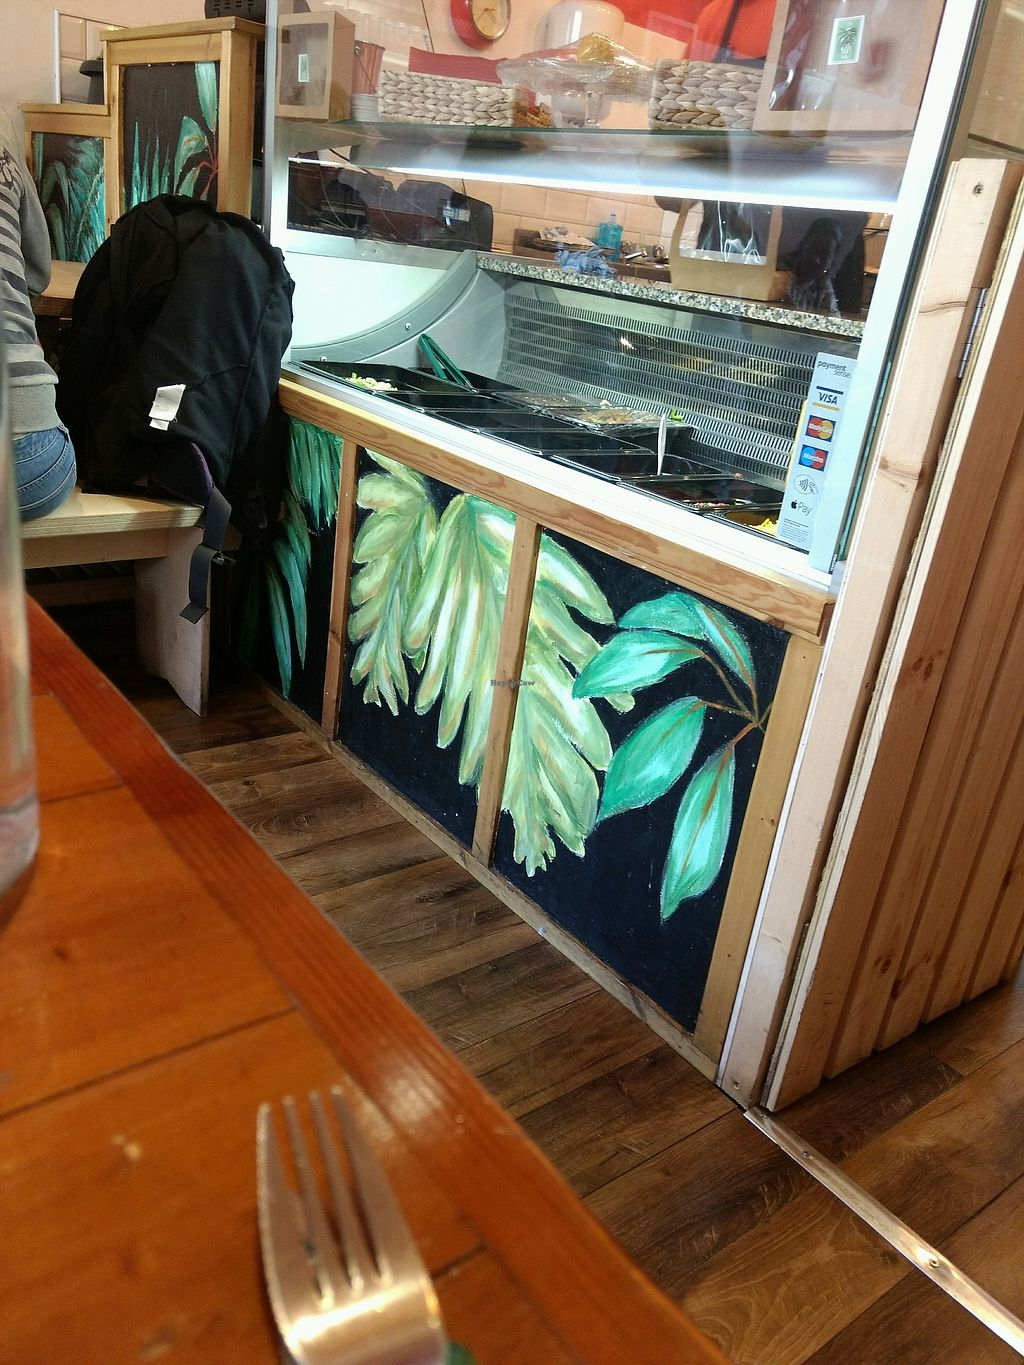 """Photo of The  Pakora Bar  by <a href=""""/members/profile/craigmc"""">craigmc</a> <br/>deli counter <br/> May 16, 2018  - <a href='/contact/abuse/image/79527/400631'>Report</a>"""